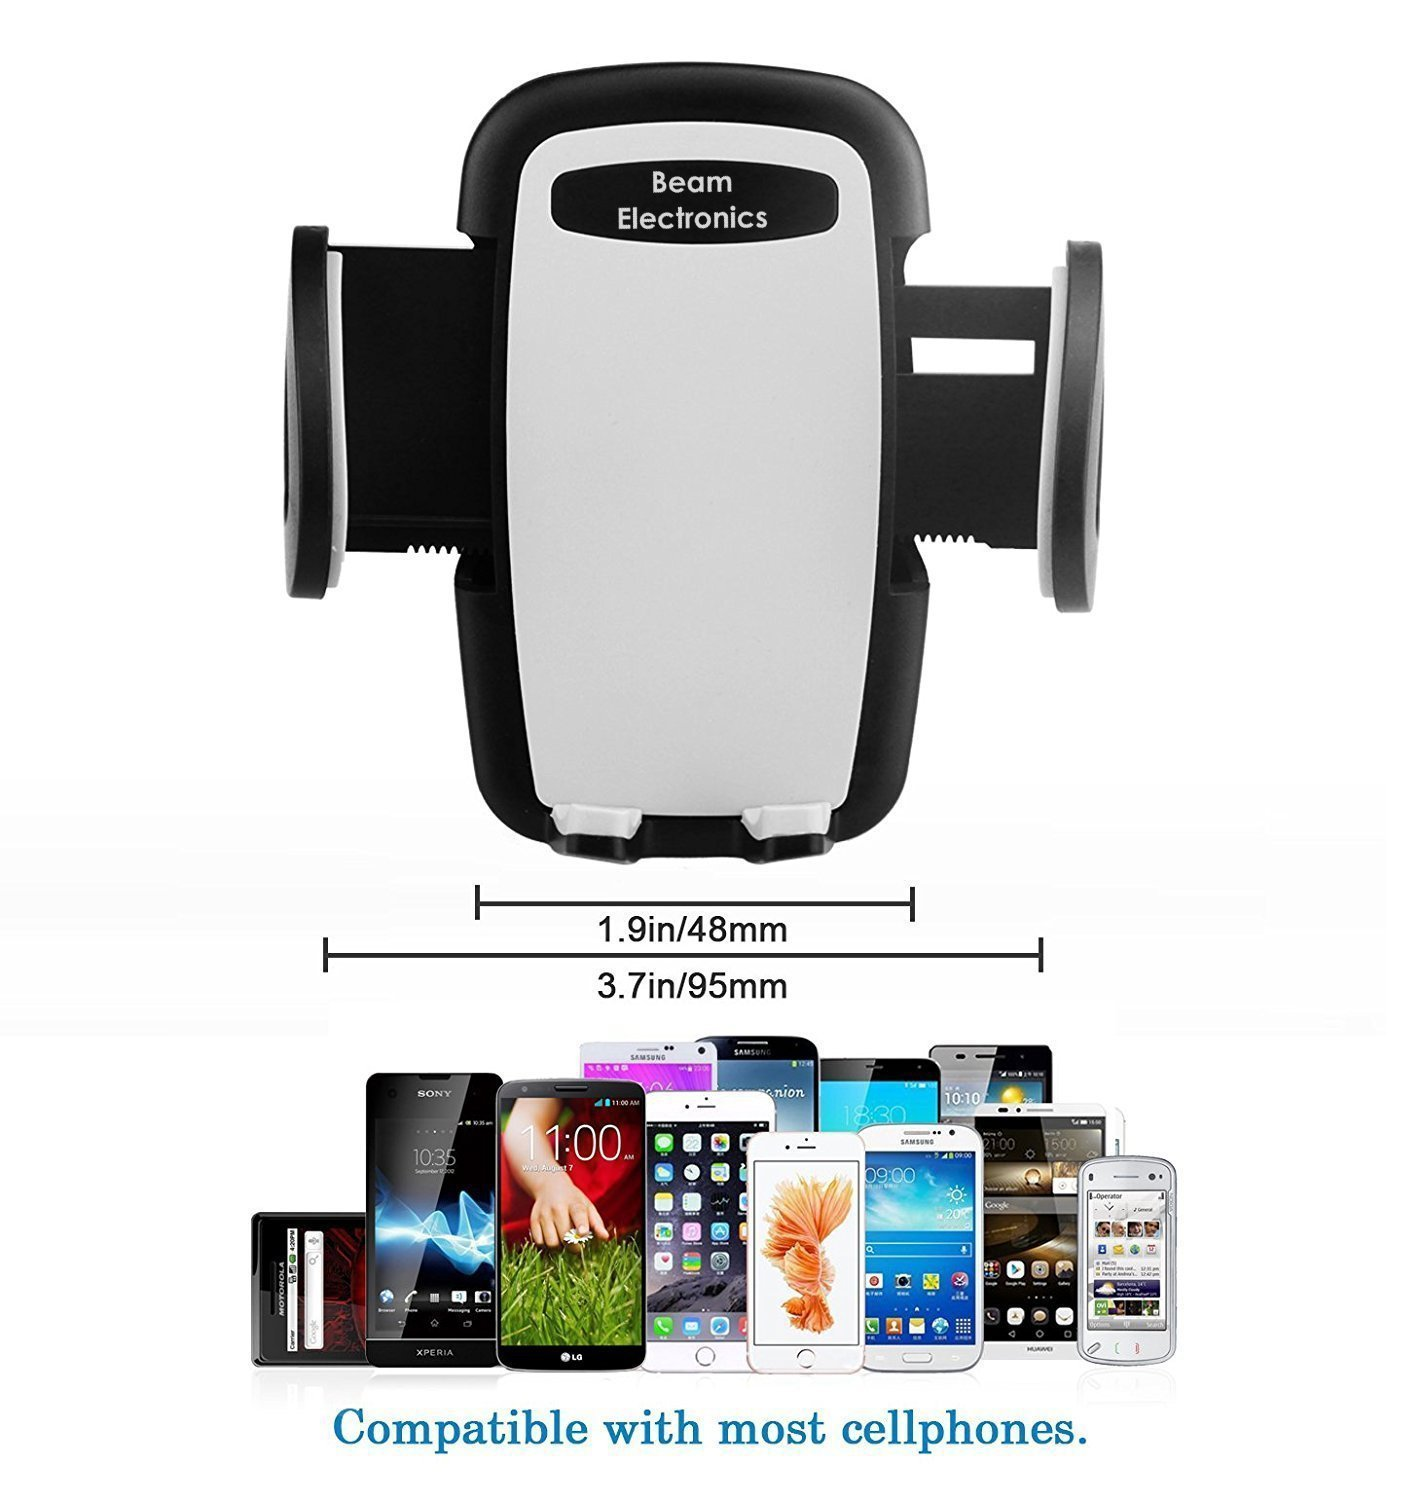 Beam Electronics Universal Smartphone Car Air Vent Mount Holder Cradle Compatible with iPhone X 8 8 Plus 7 7 Plus SE 6s 6 Plus 6 5s 5 4s 4 Samsung Galaxy S6 S5 S4 LG Nexus Sony Nokia and More… by Beam Electronics (Image #8)